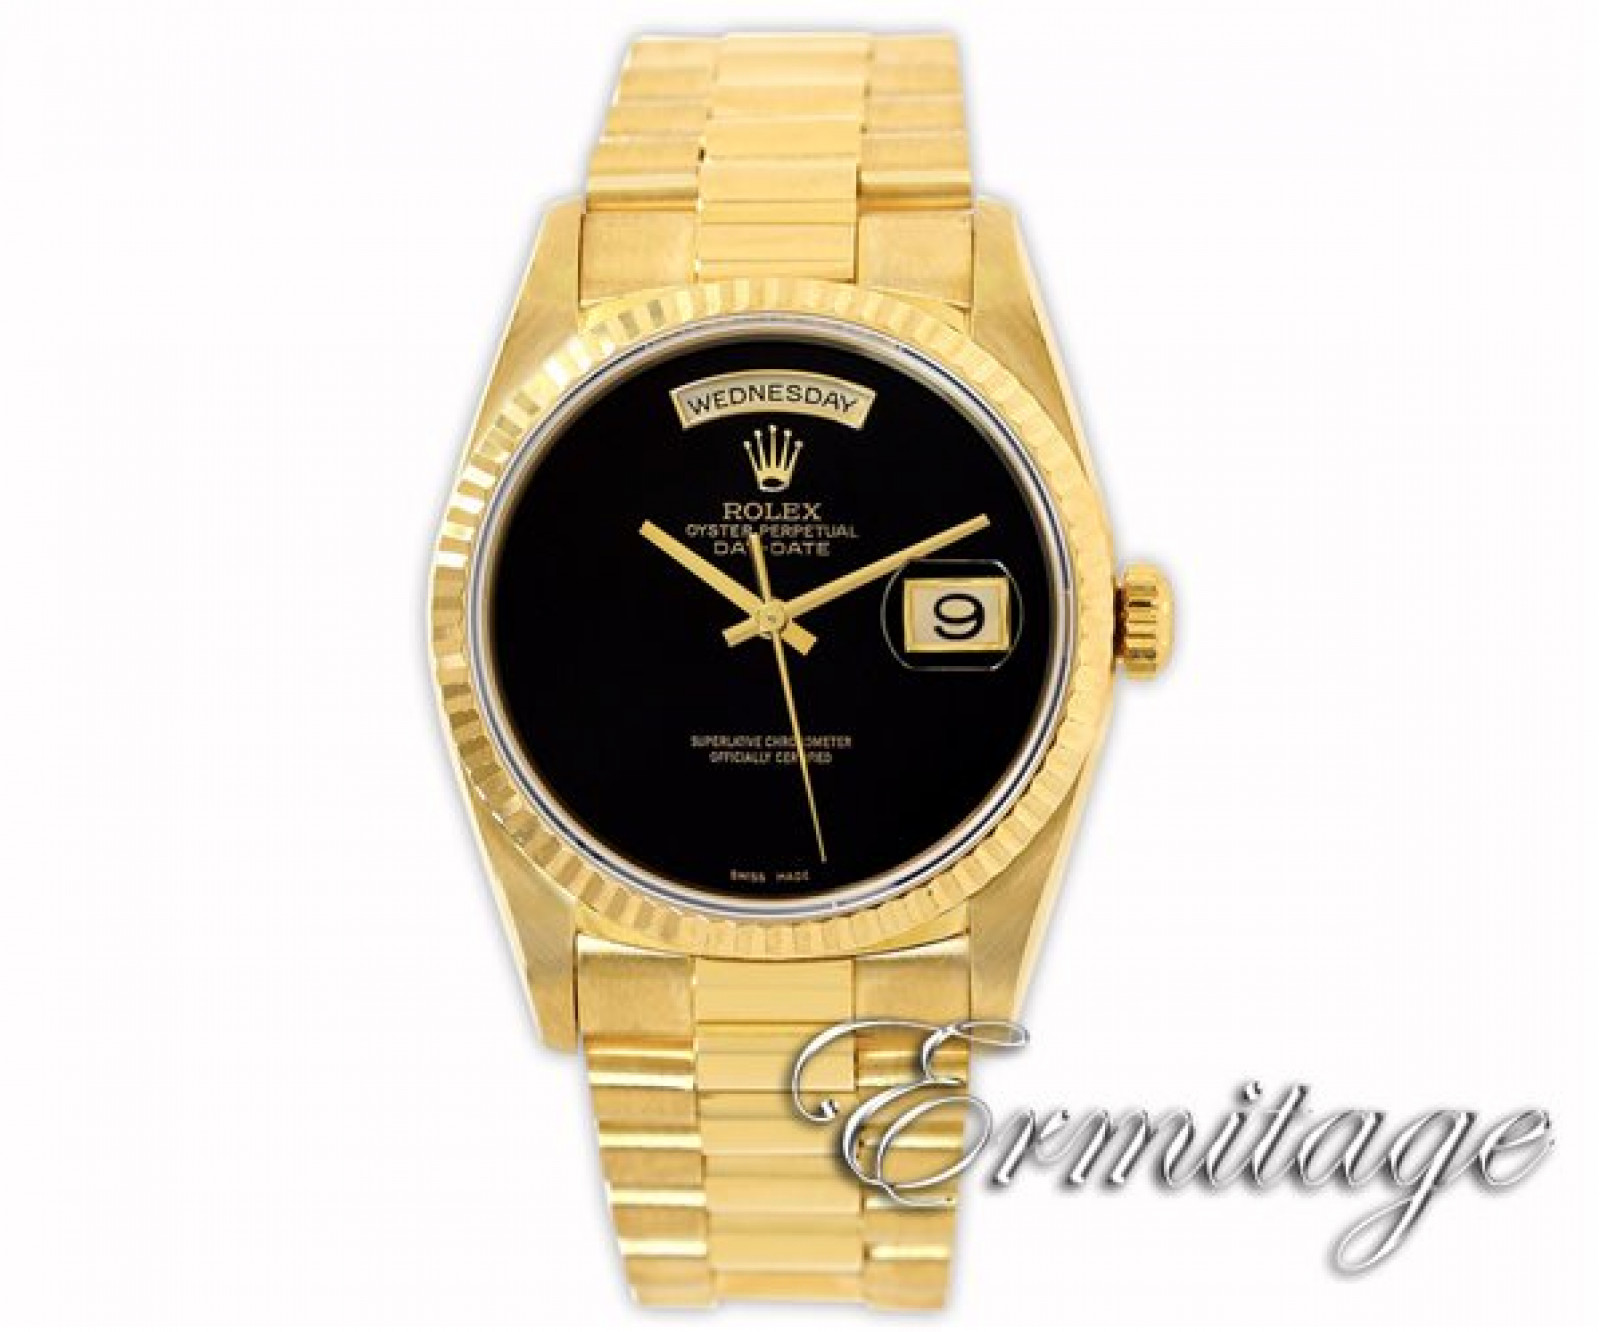 Pre-Owned Rolex Day-Date 18238 with Black Onyx Dial